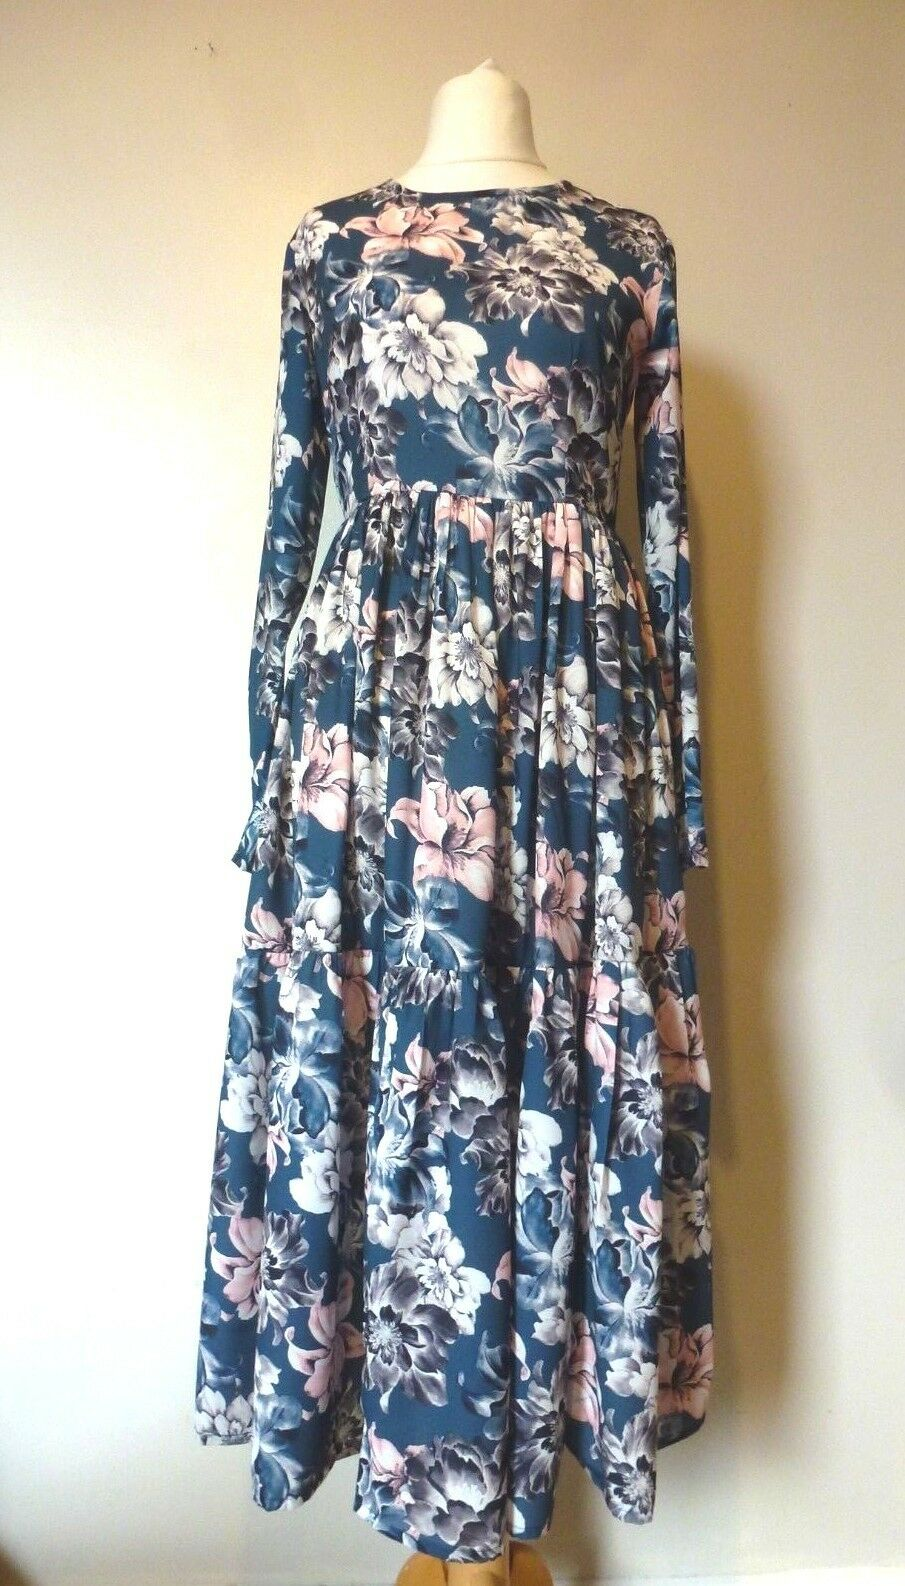 Lace & Beads Long Sleeve Floral Boo Dress Sizes 8 or 10 BNWT RRP  Navy